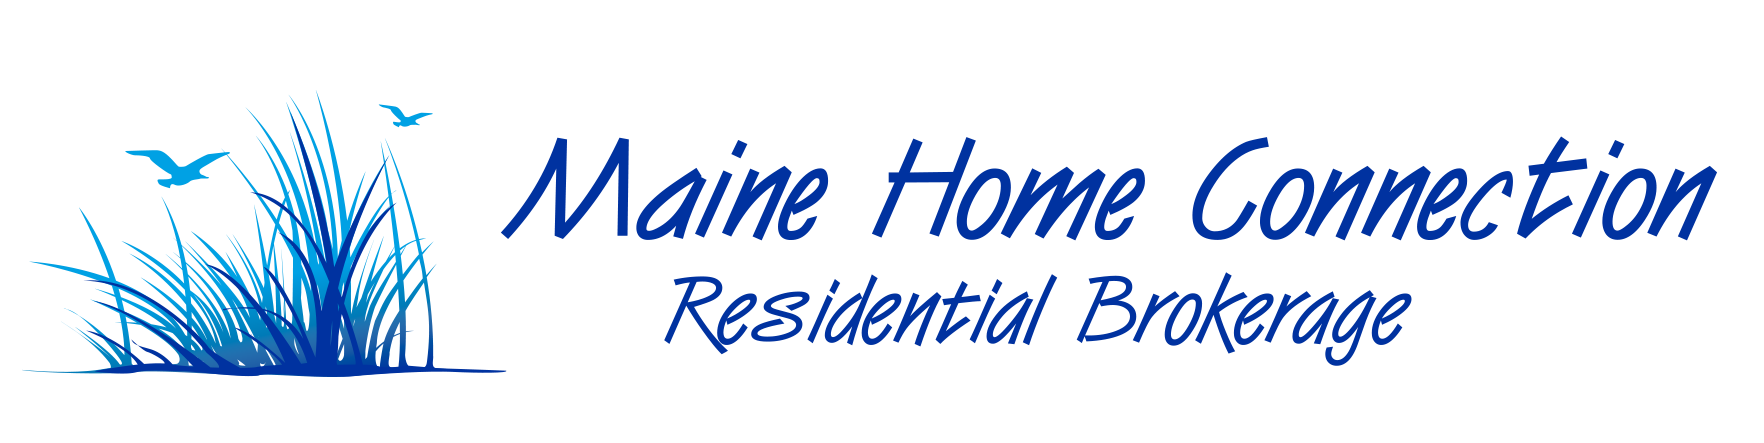 Portland Maine Real Estate Blog | Maine Home Connection